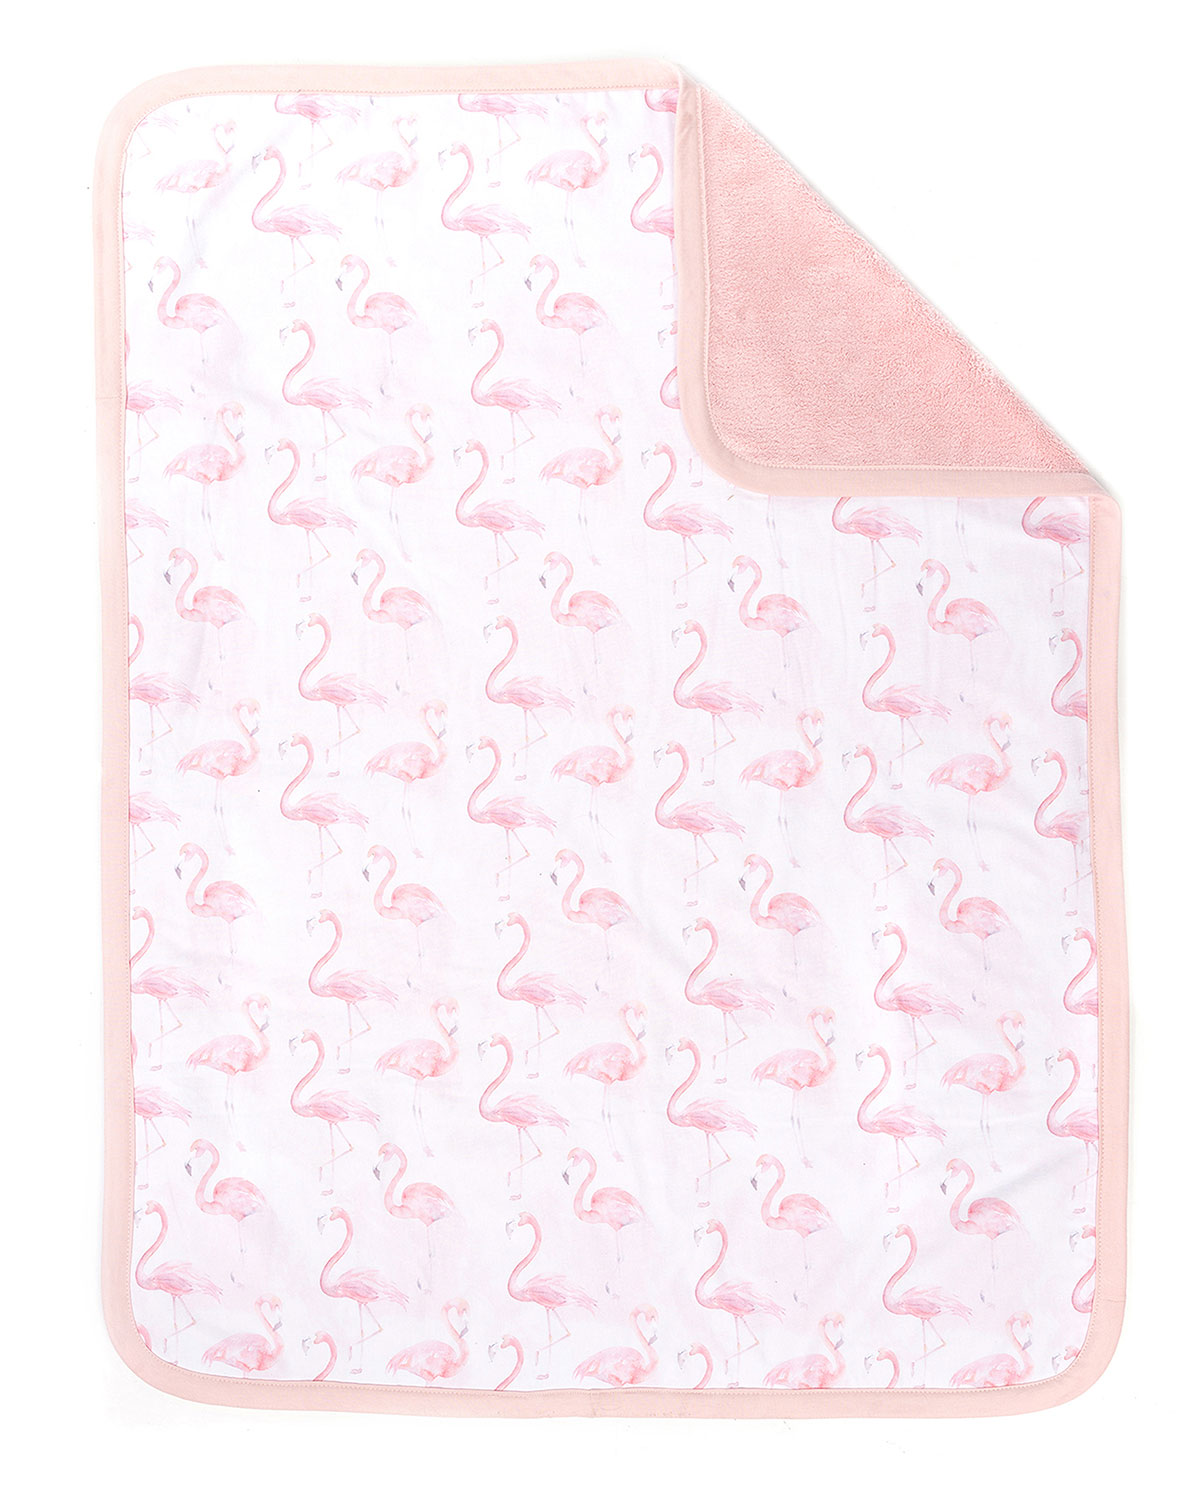 Oilo Studio Flamingo Cuddle Blanket Amp Star Pillow Set